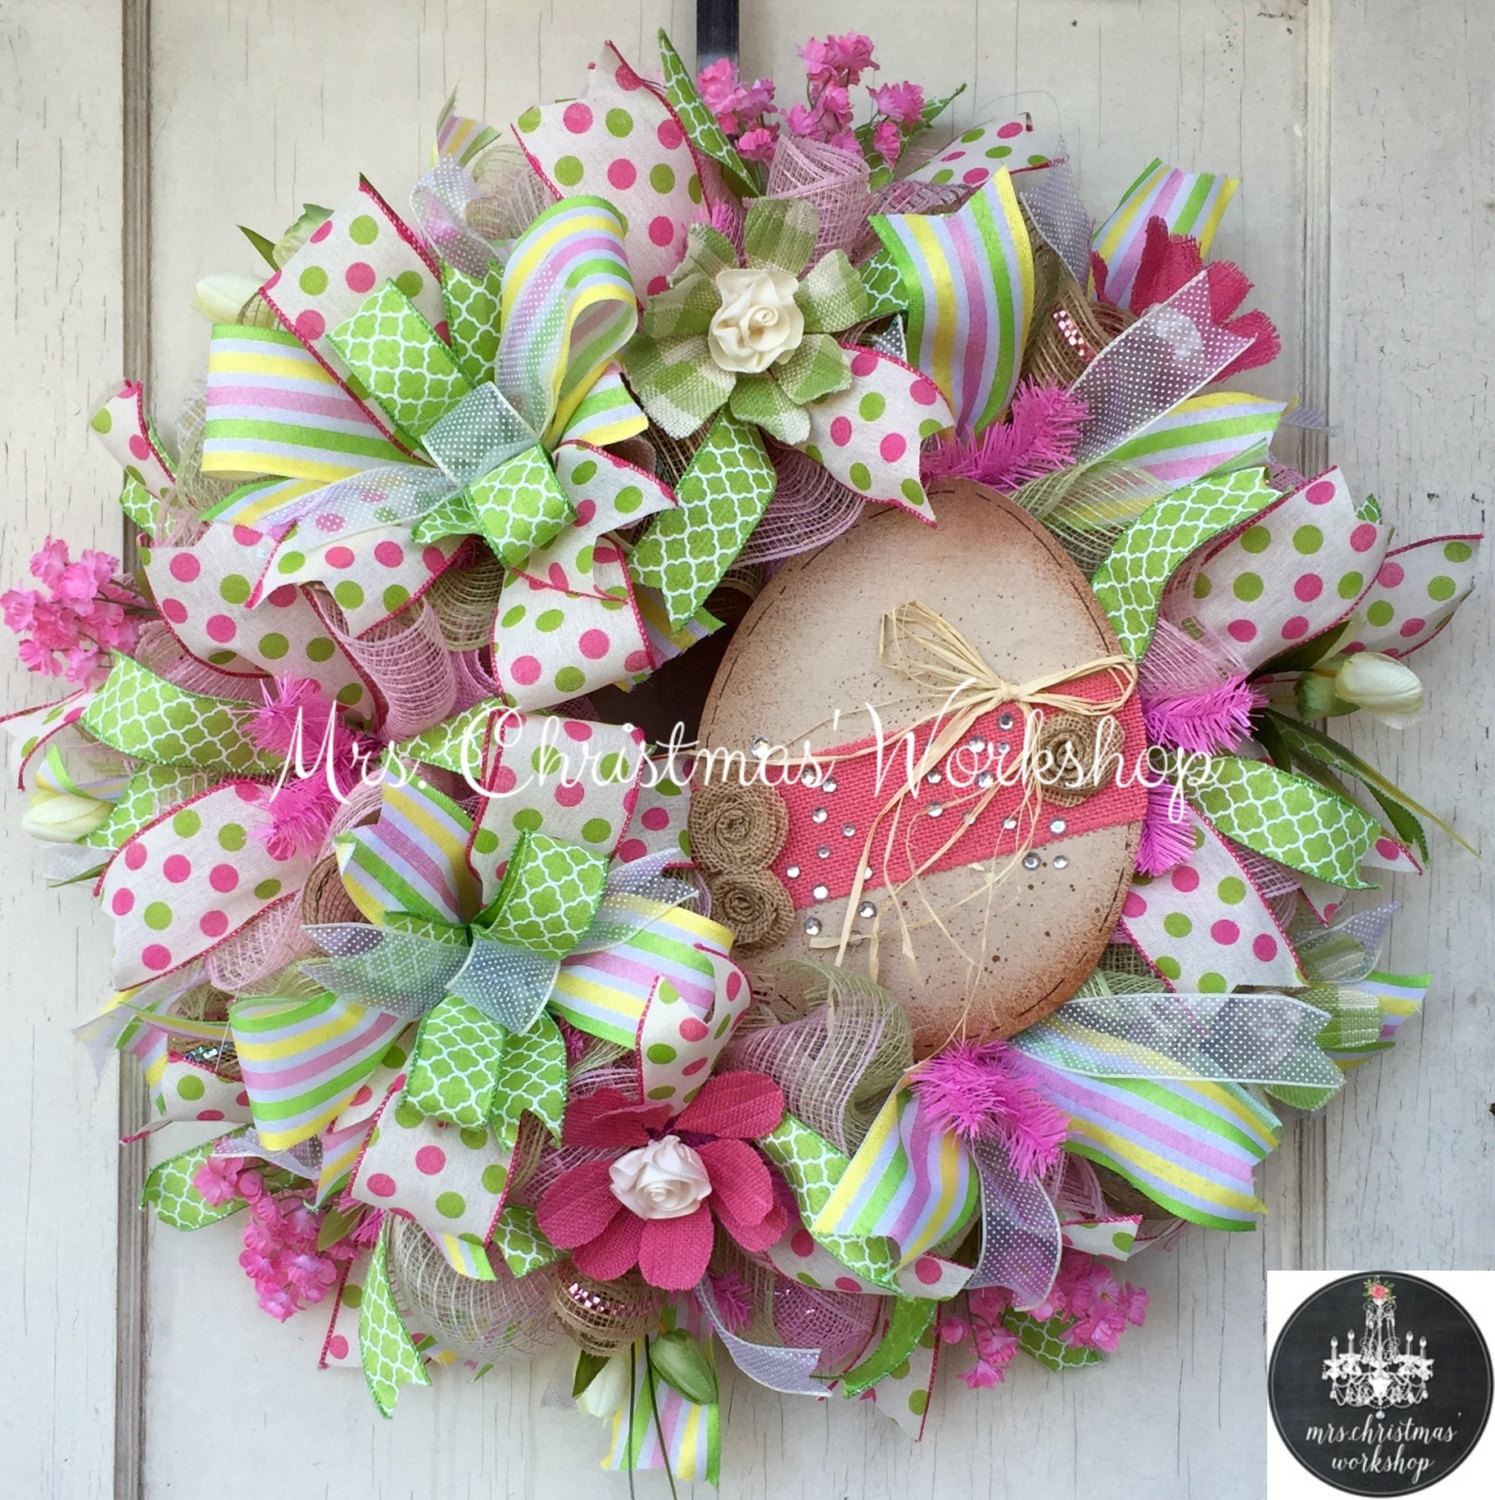 18 cheerful handmade easter wreath designs to get your home in the festive spirit - Easter Wreaths